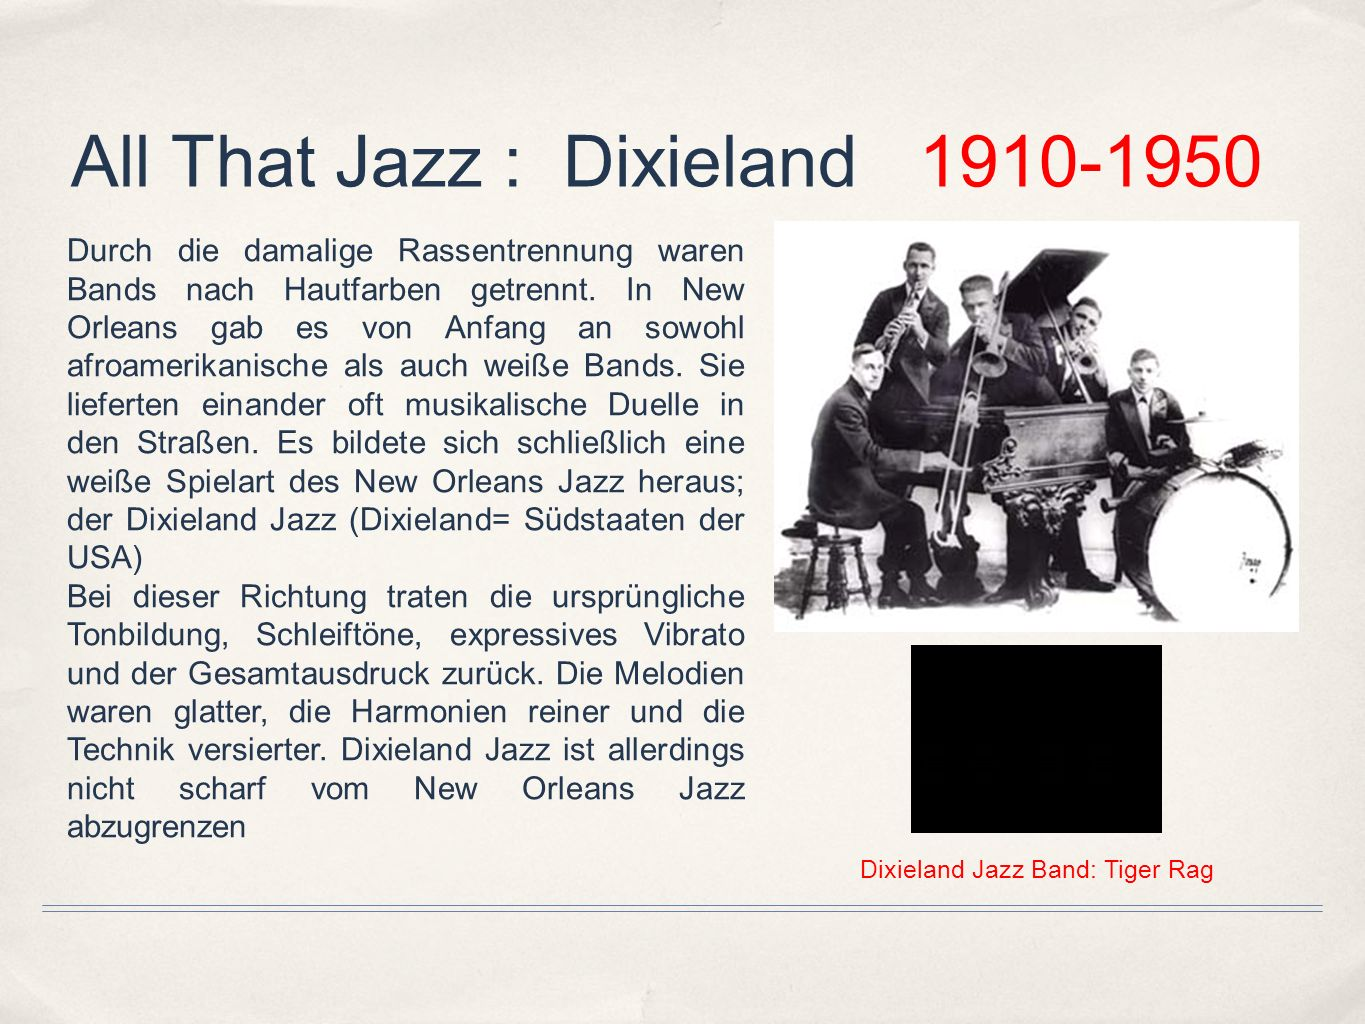 All That Jazz : Dixieland 1910-1950